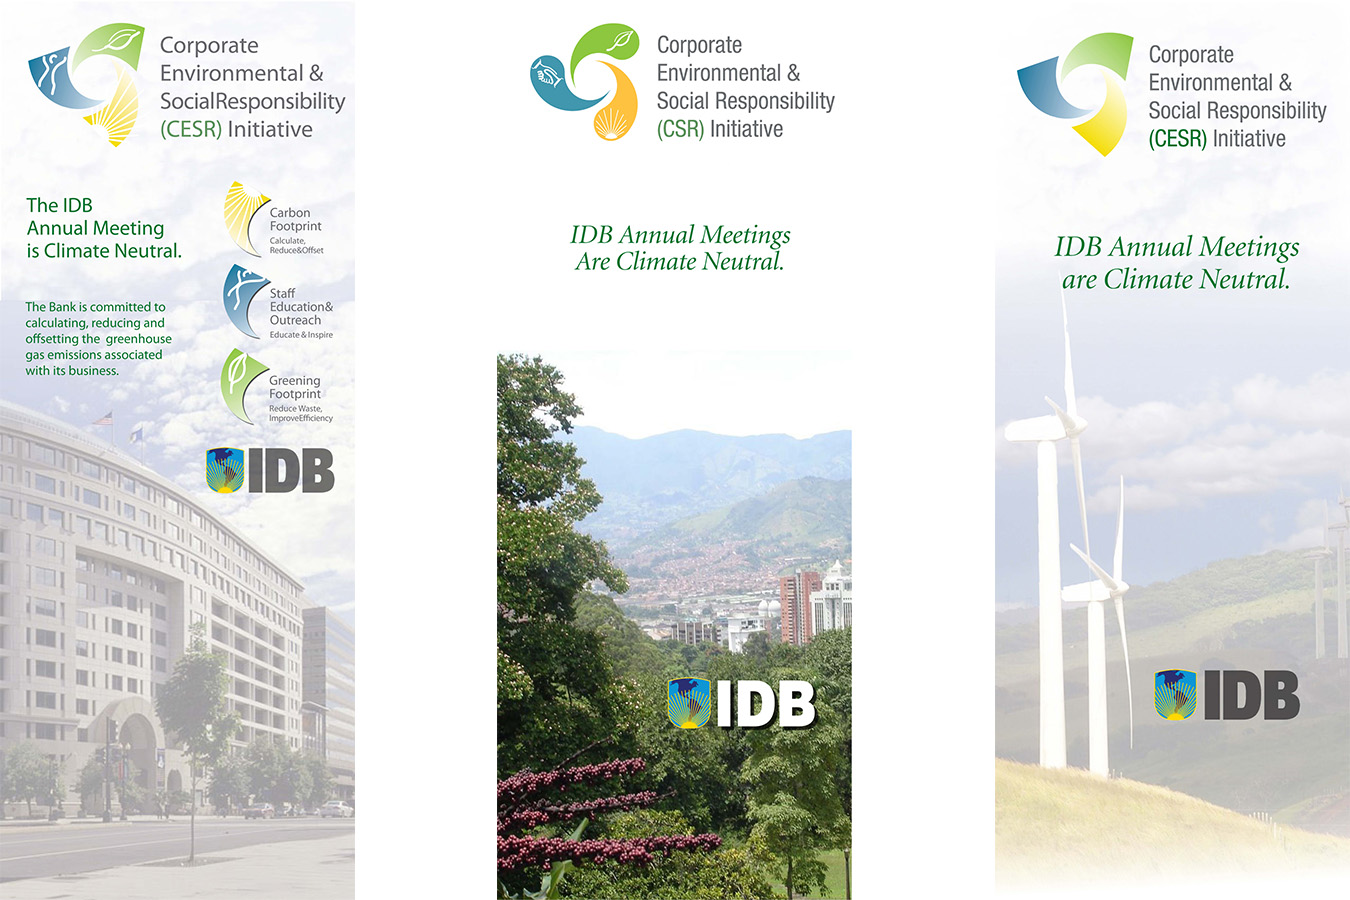 IDB Banners : Inter-American Development Bank Banners for sustainability program